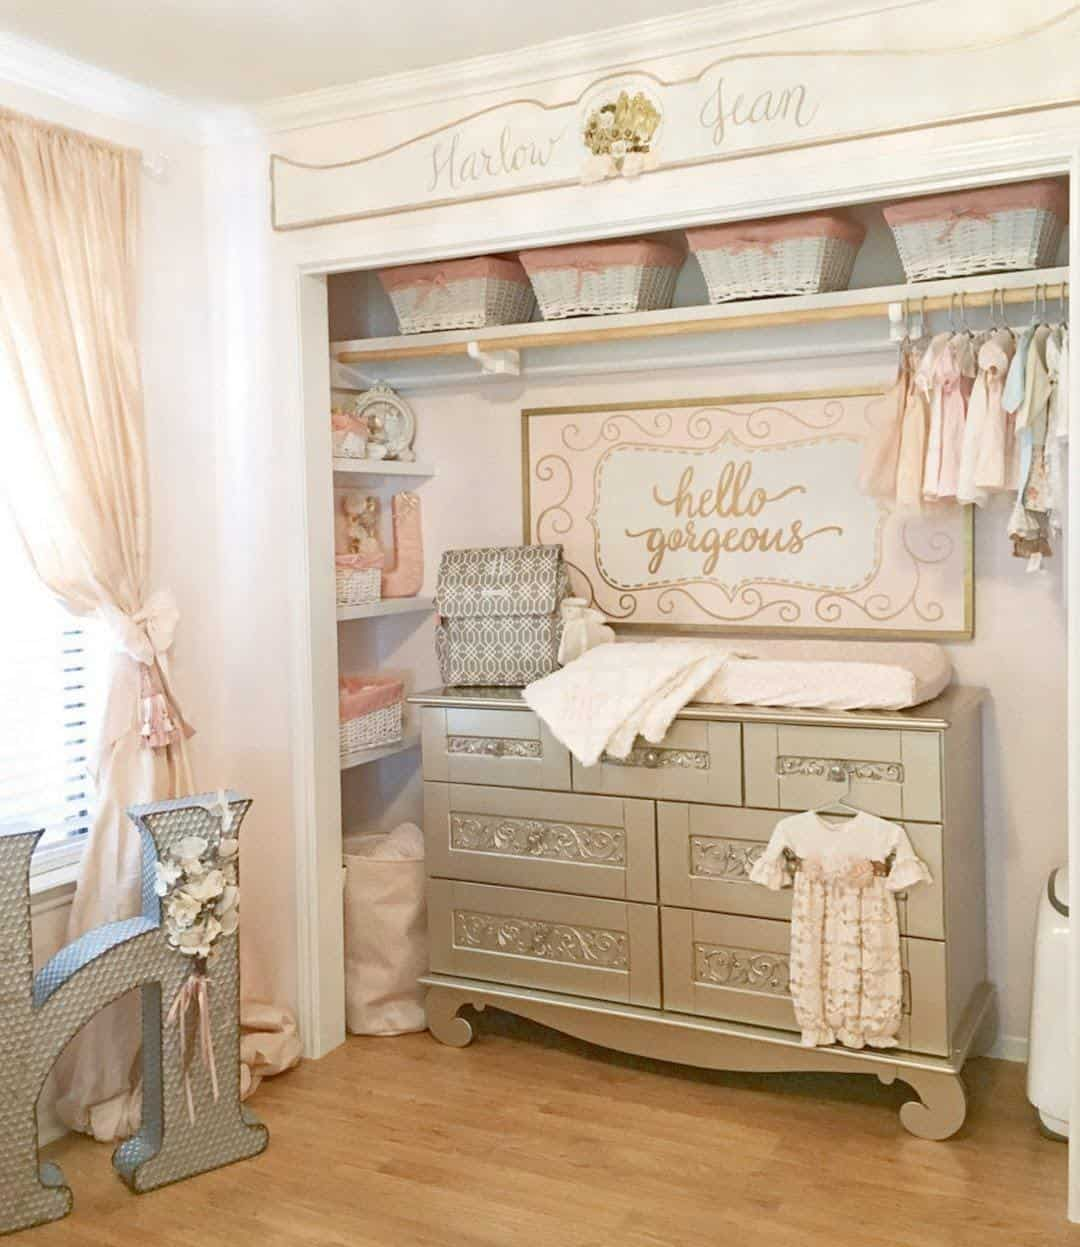 baby closet ideas - Diaper Changing Table Closet